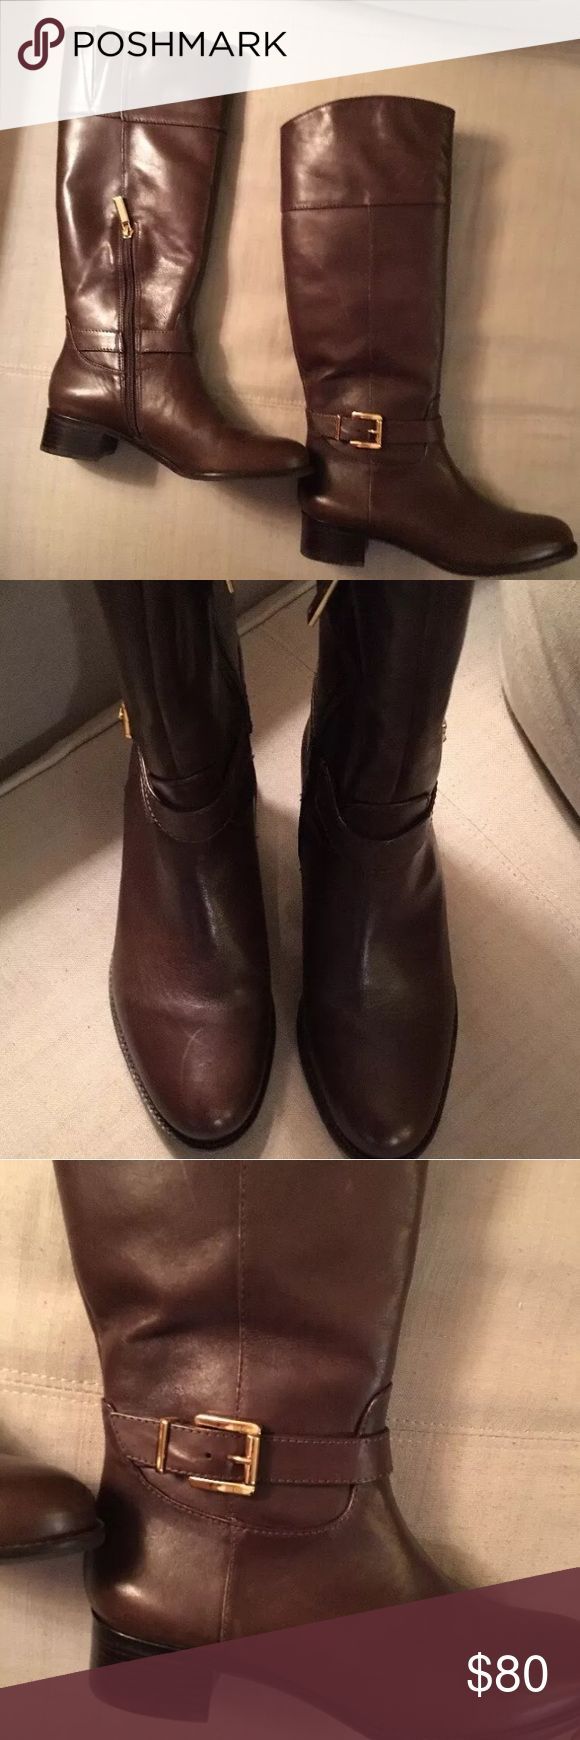 Banana Republic women's tall riding boot Like new (worn only once), BR riding boot in rich brown, with gold accent buckle on the outside and inside half-zip. Hits just below the knee. Super stylish for work with a pencil skirt or trouser, or casually with jeans or leggings.  Pet-free, smoke-free, kid-free, environment Banana Republic Shoes